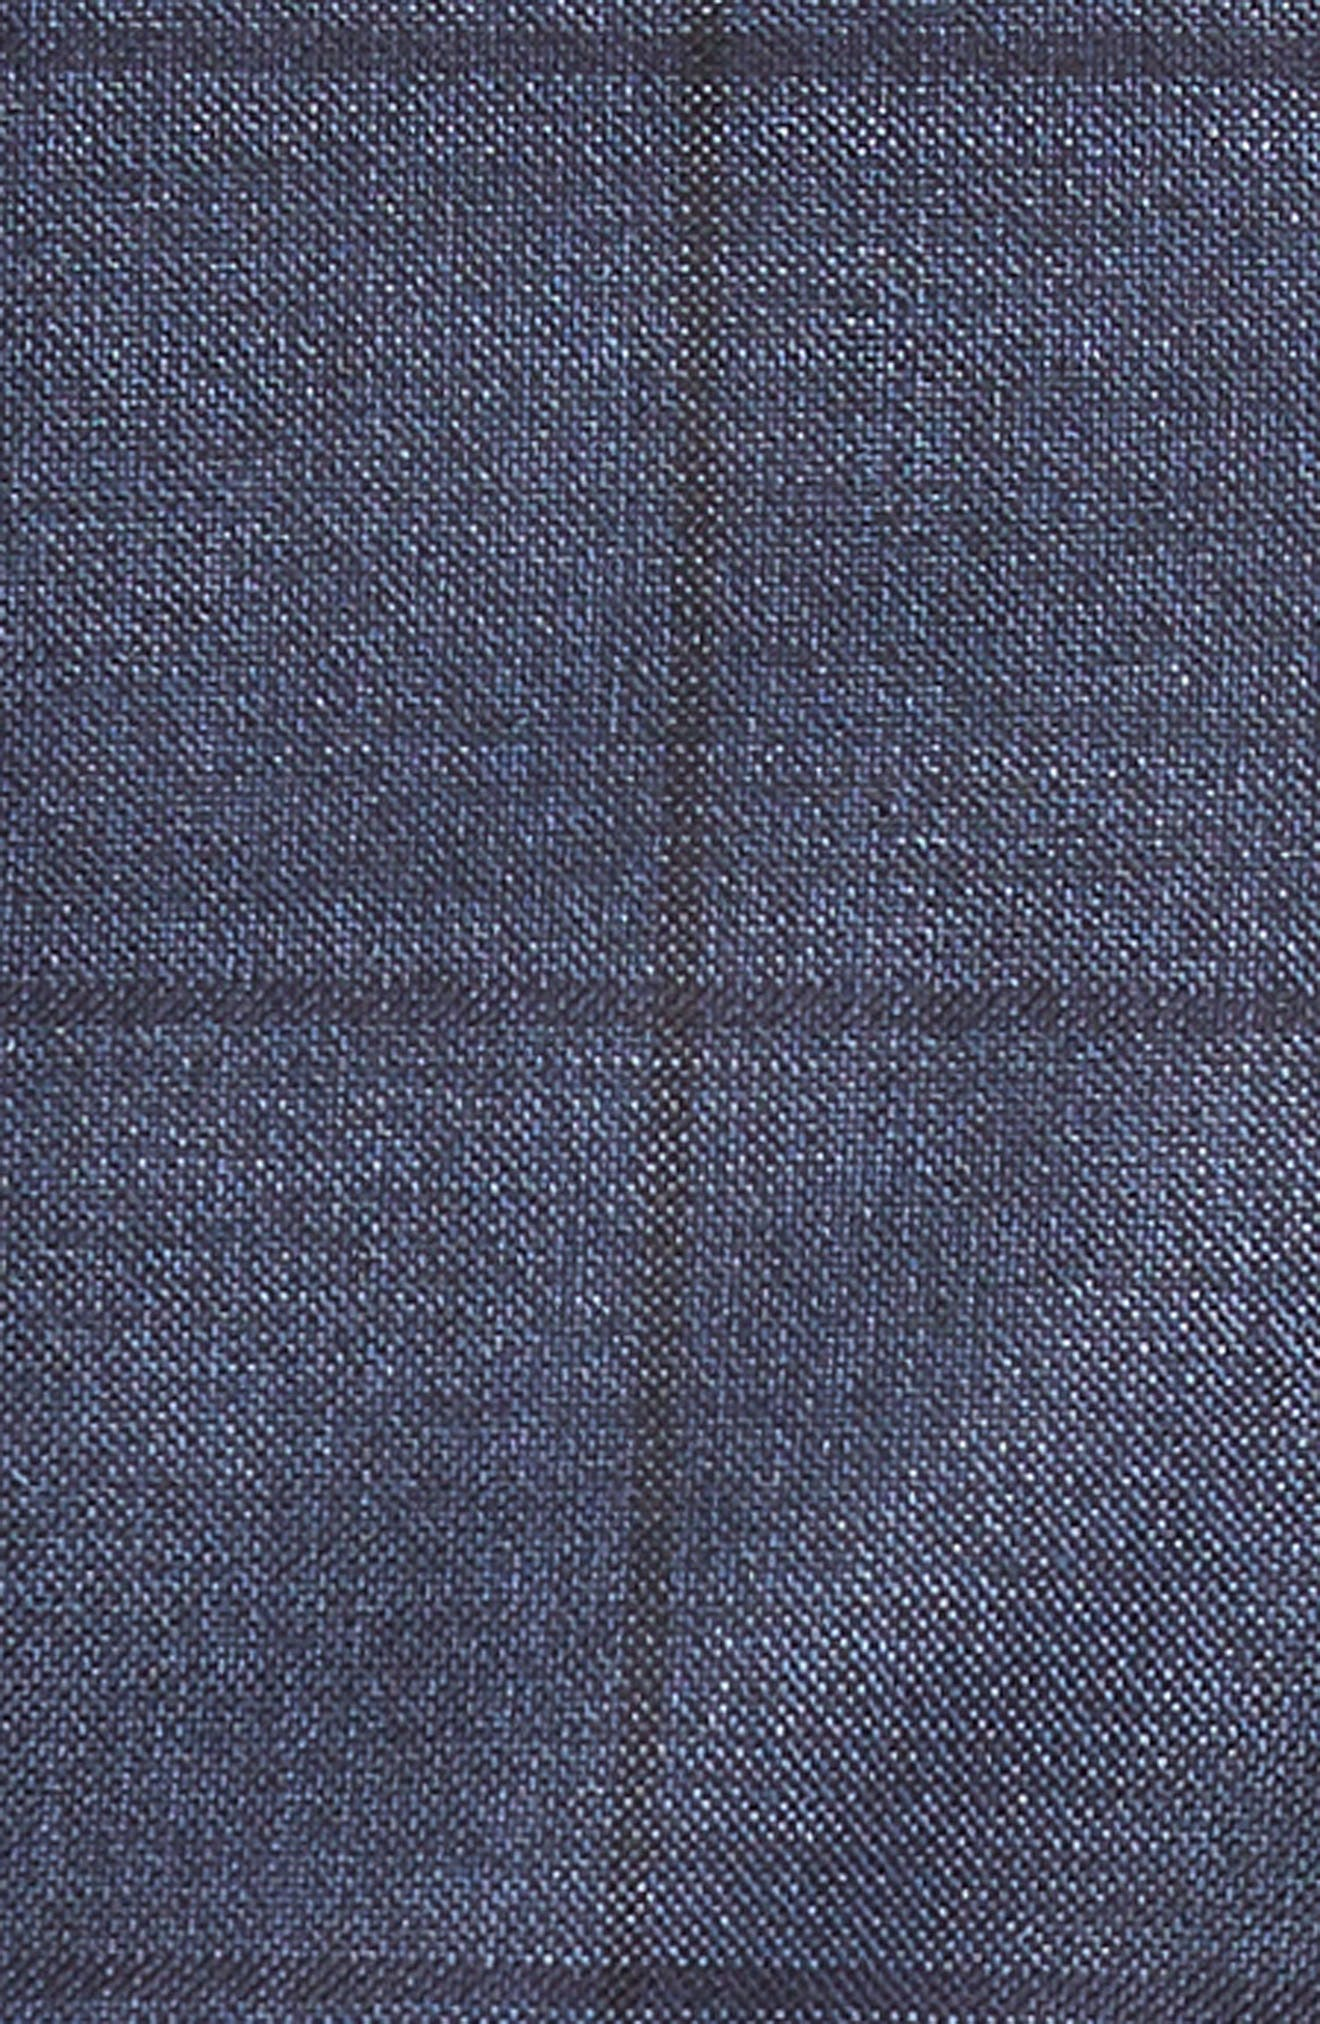 Harvers/Glover Trim Fit Windowpane Wool & Silk Suit,                             Alternate thumbnail 7, color,                             OPEN BLUE